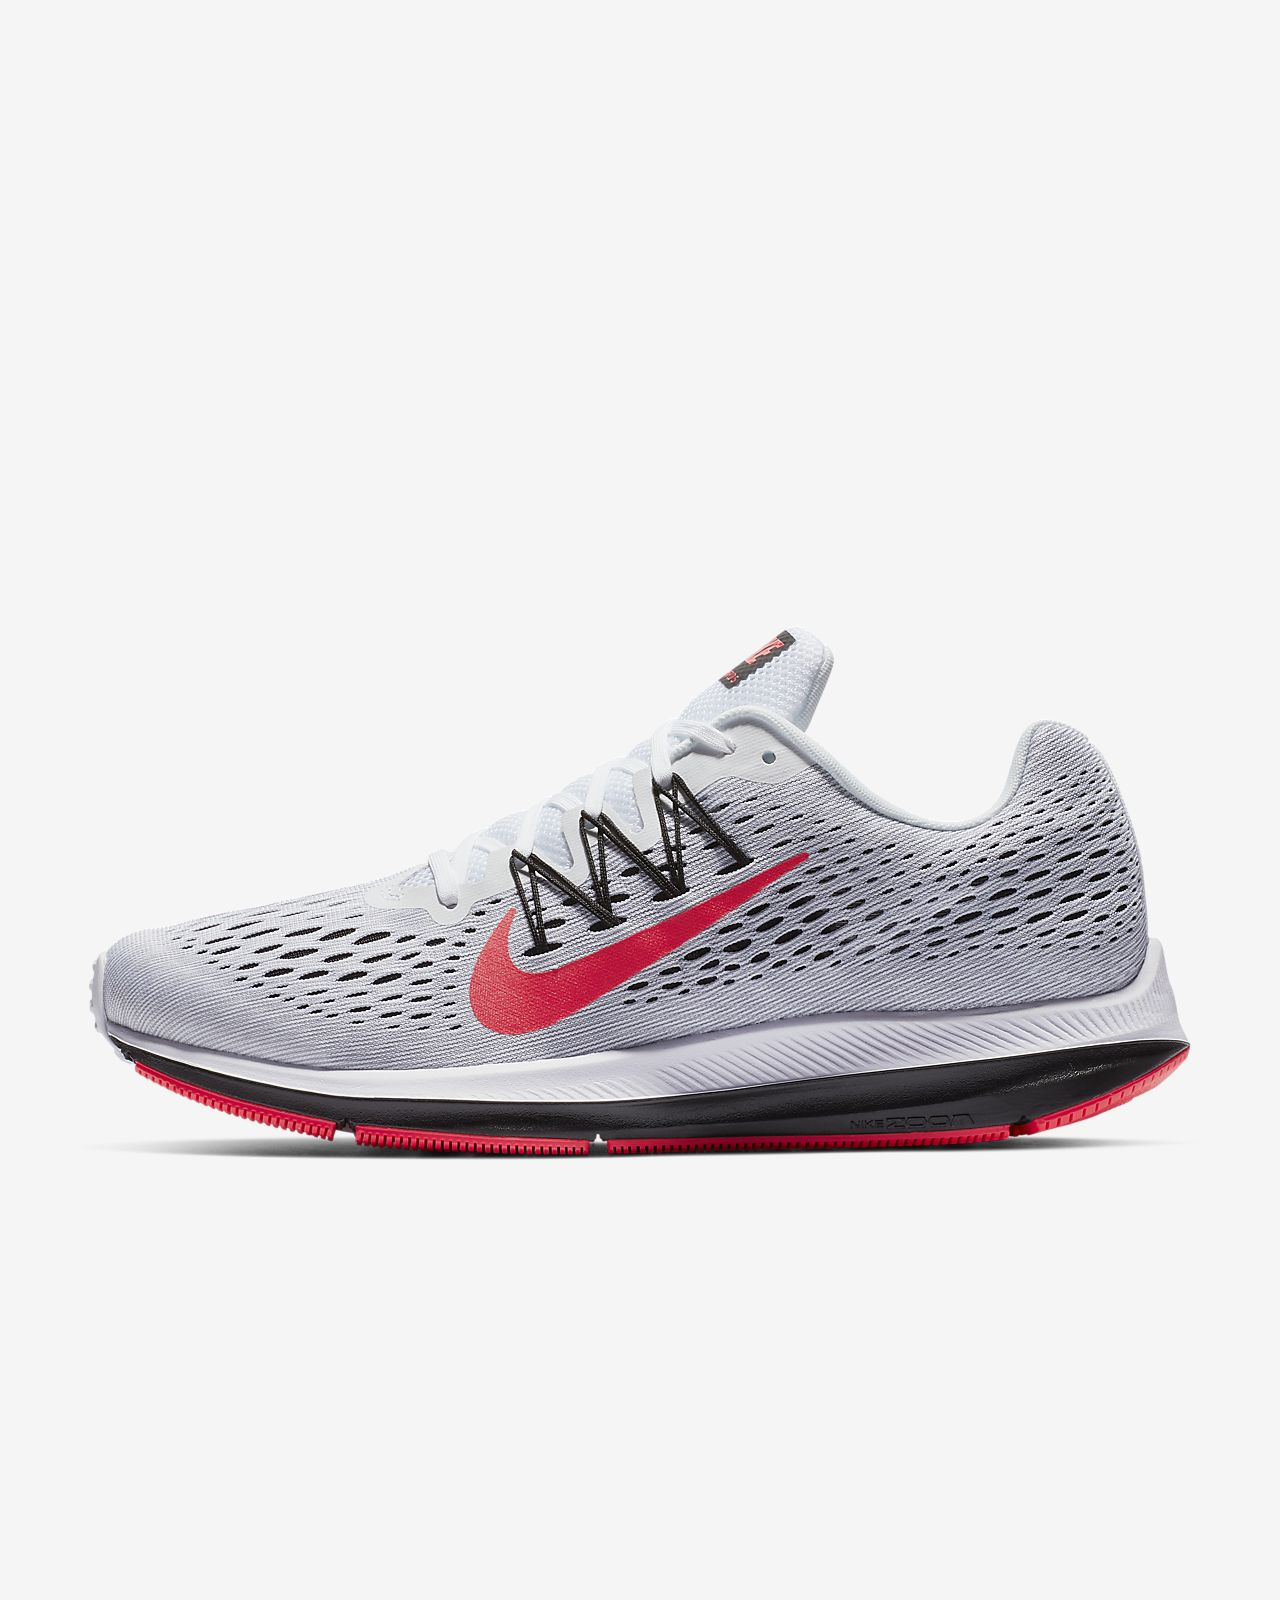 a02f1398ee9 Nike Air Zoom Winflo 5 Men s Running Shoe. Nike.com IN